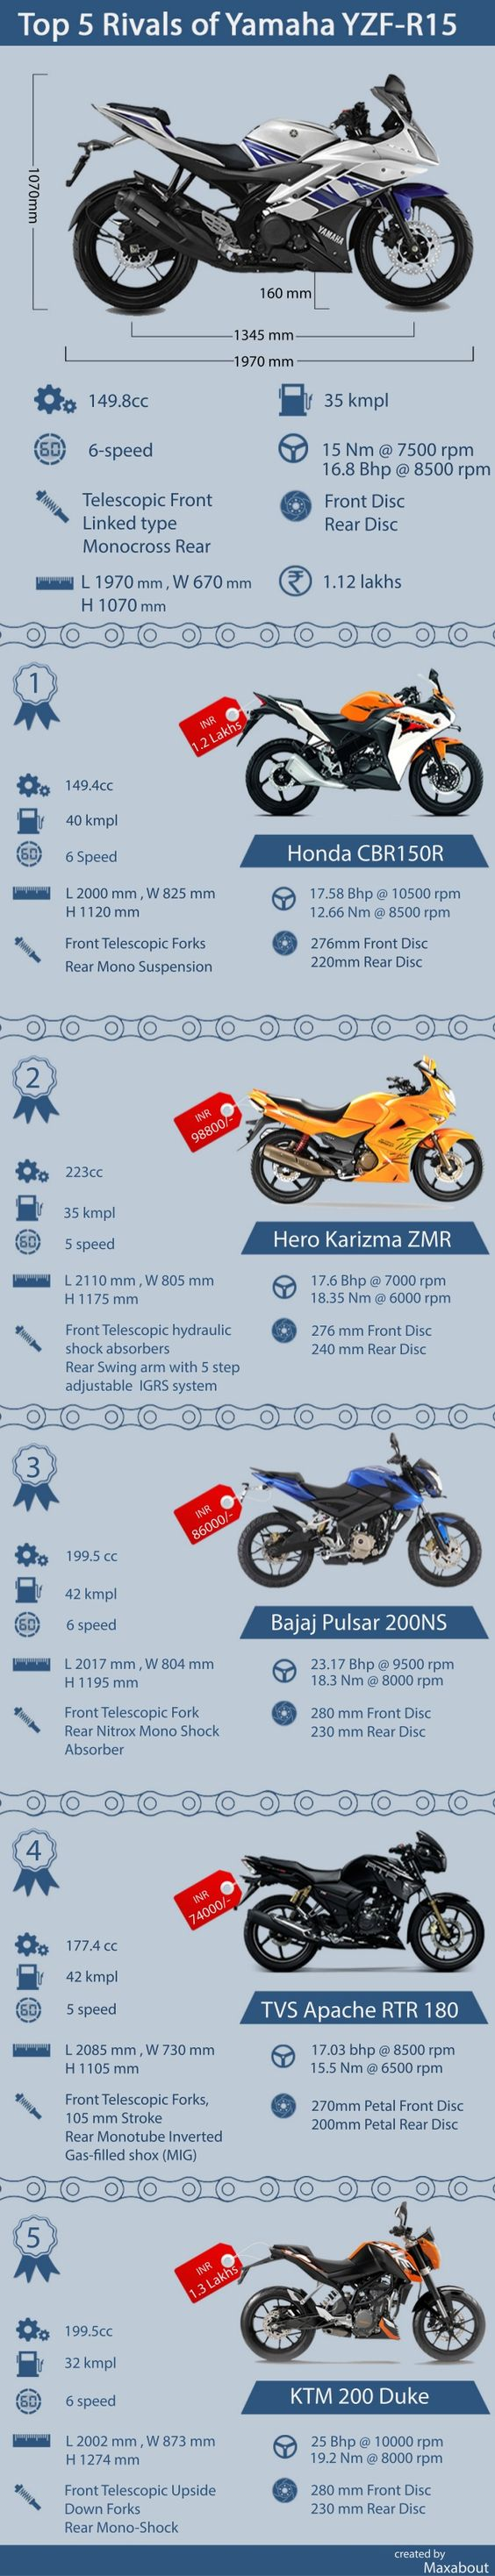 Top 5 Rivals of Yamaha YZF-R15